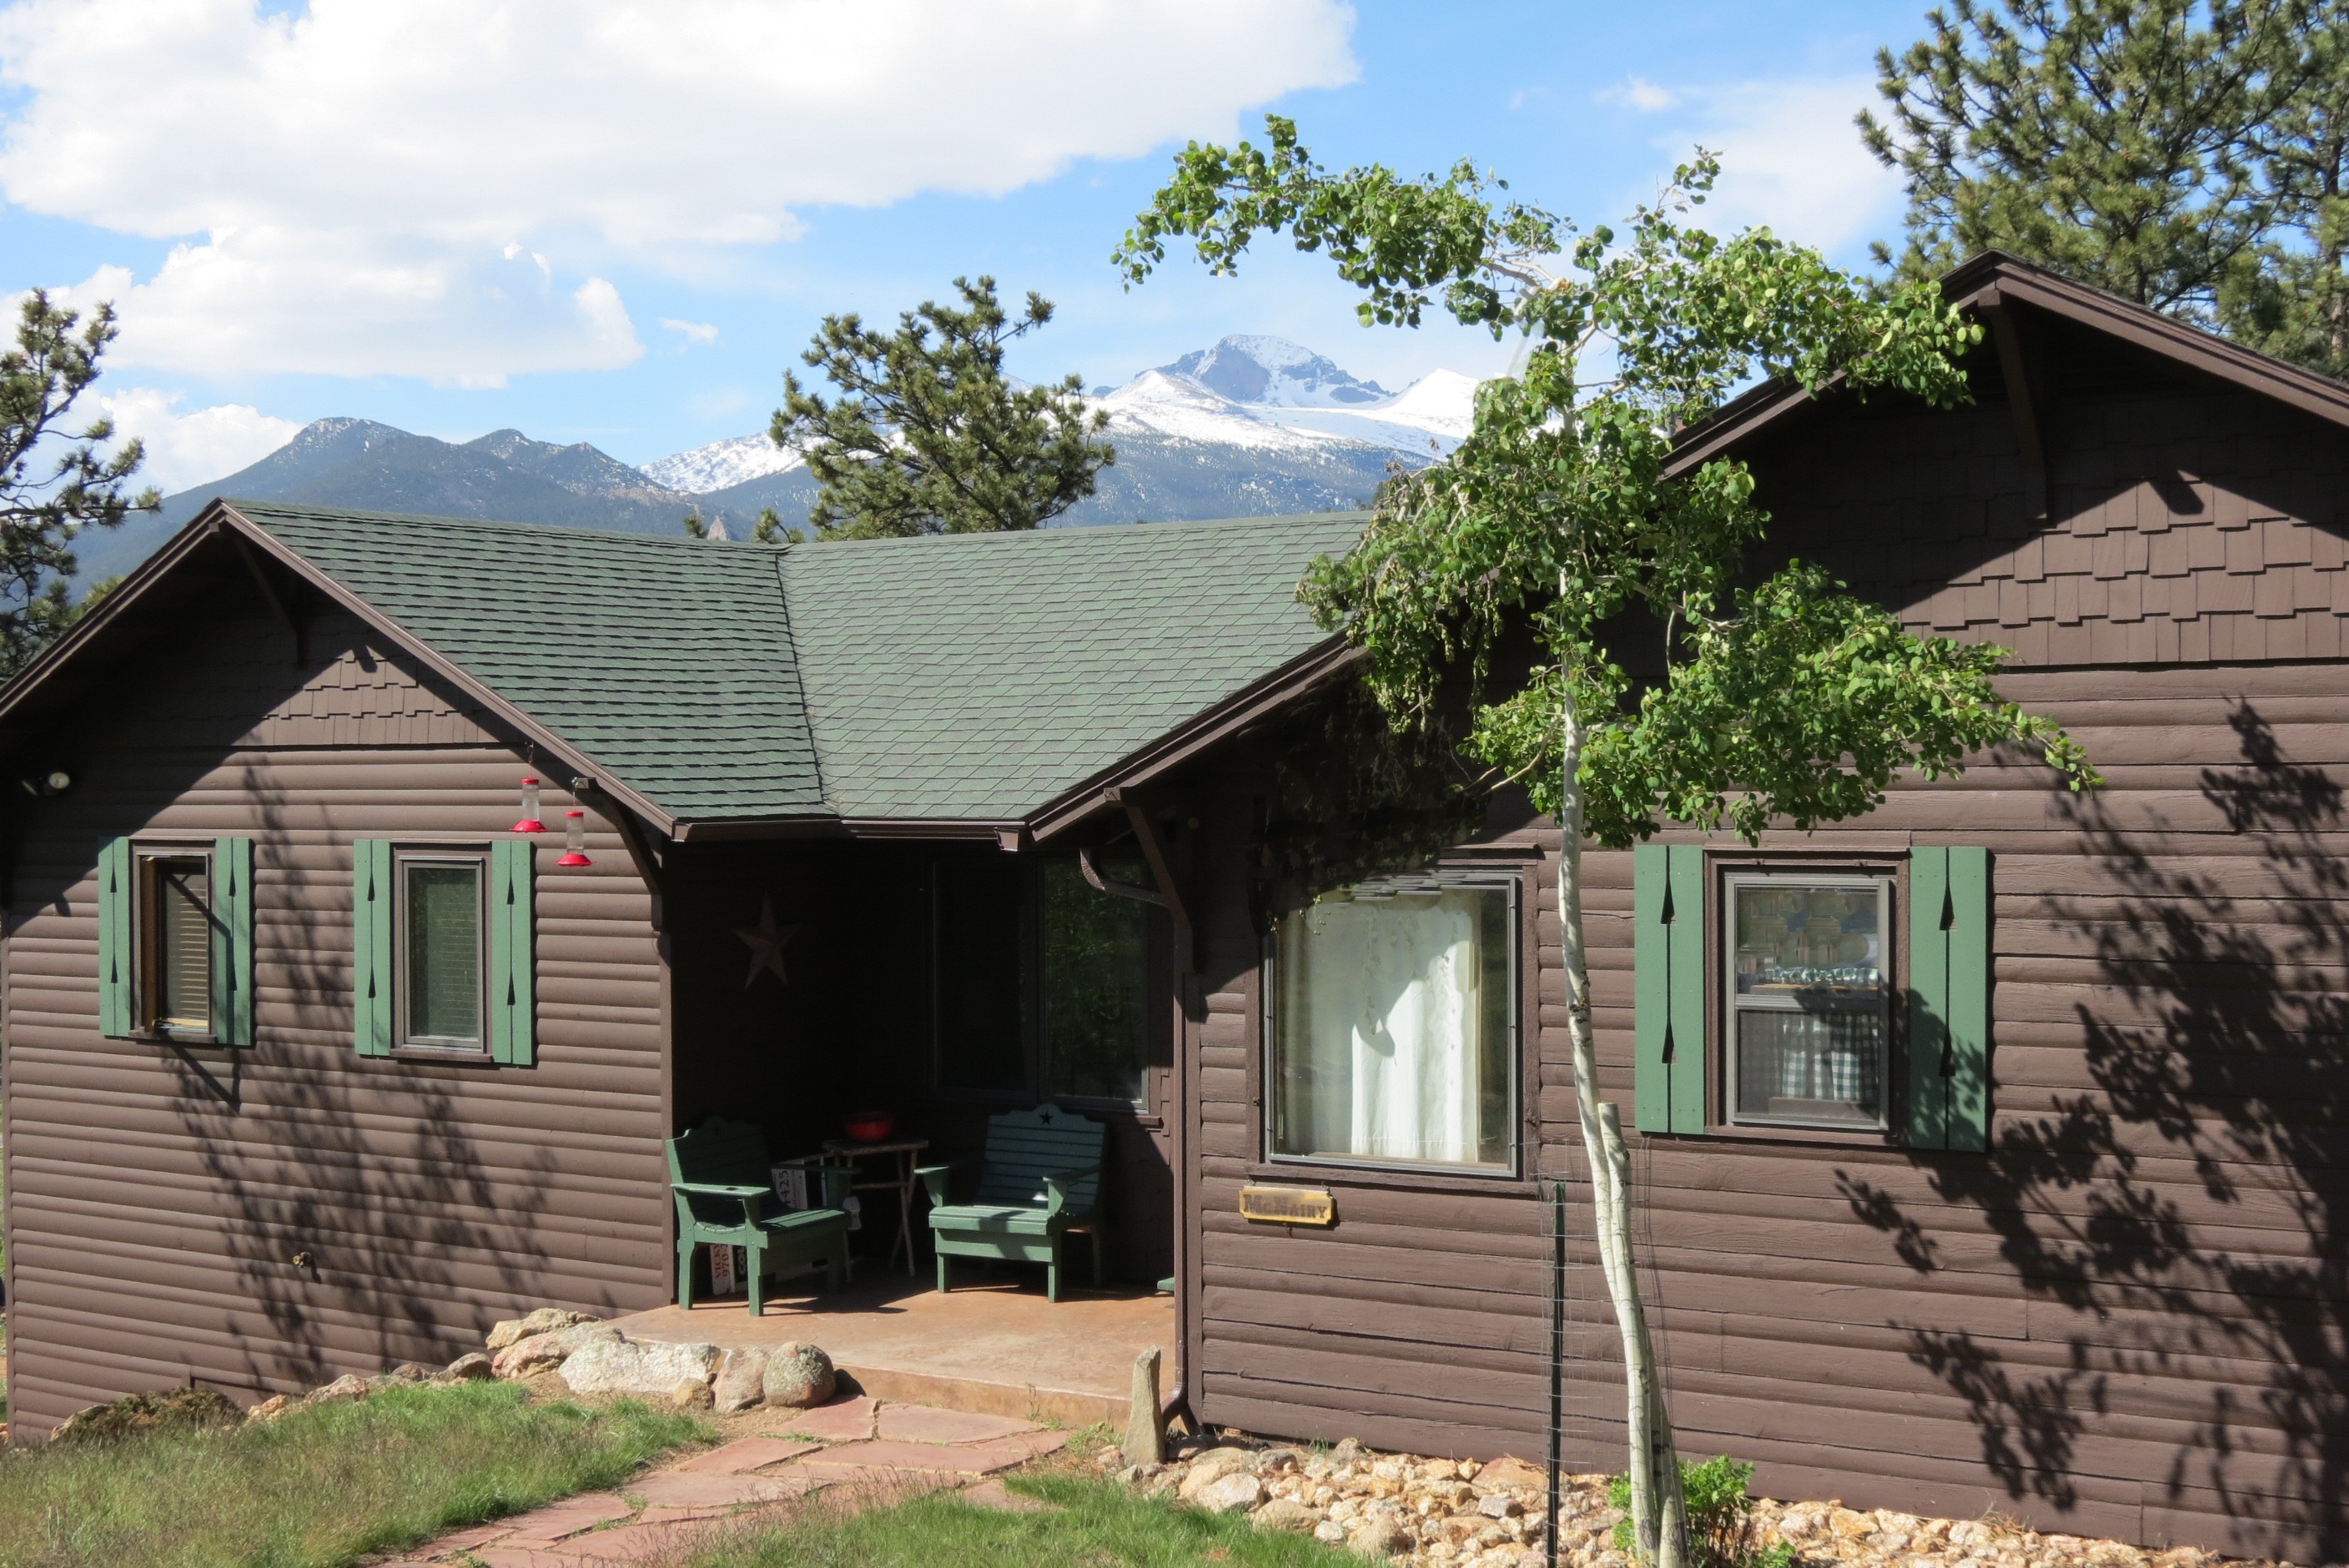 encantado cabins springs pin resort colorado cabin dripping estes park the